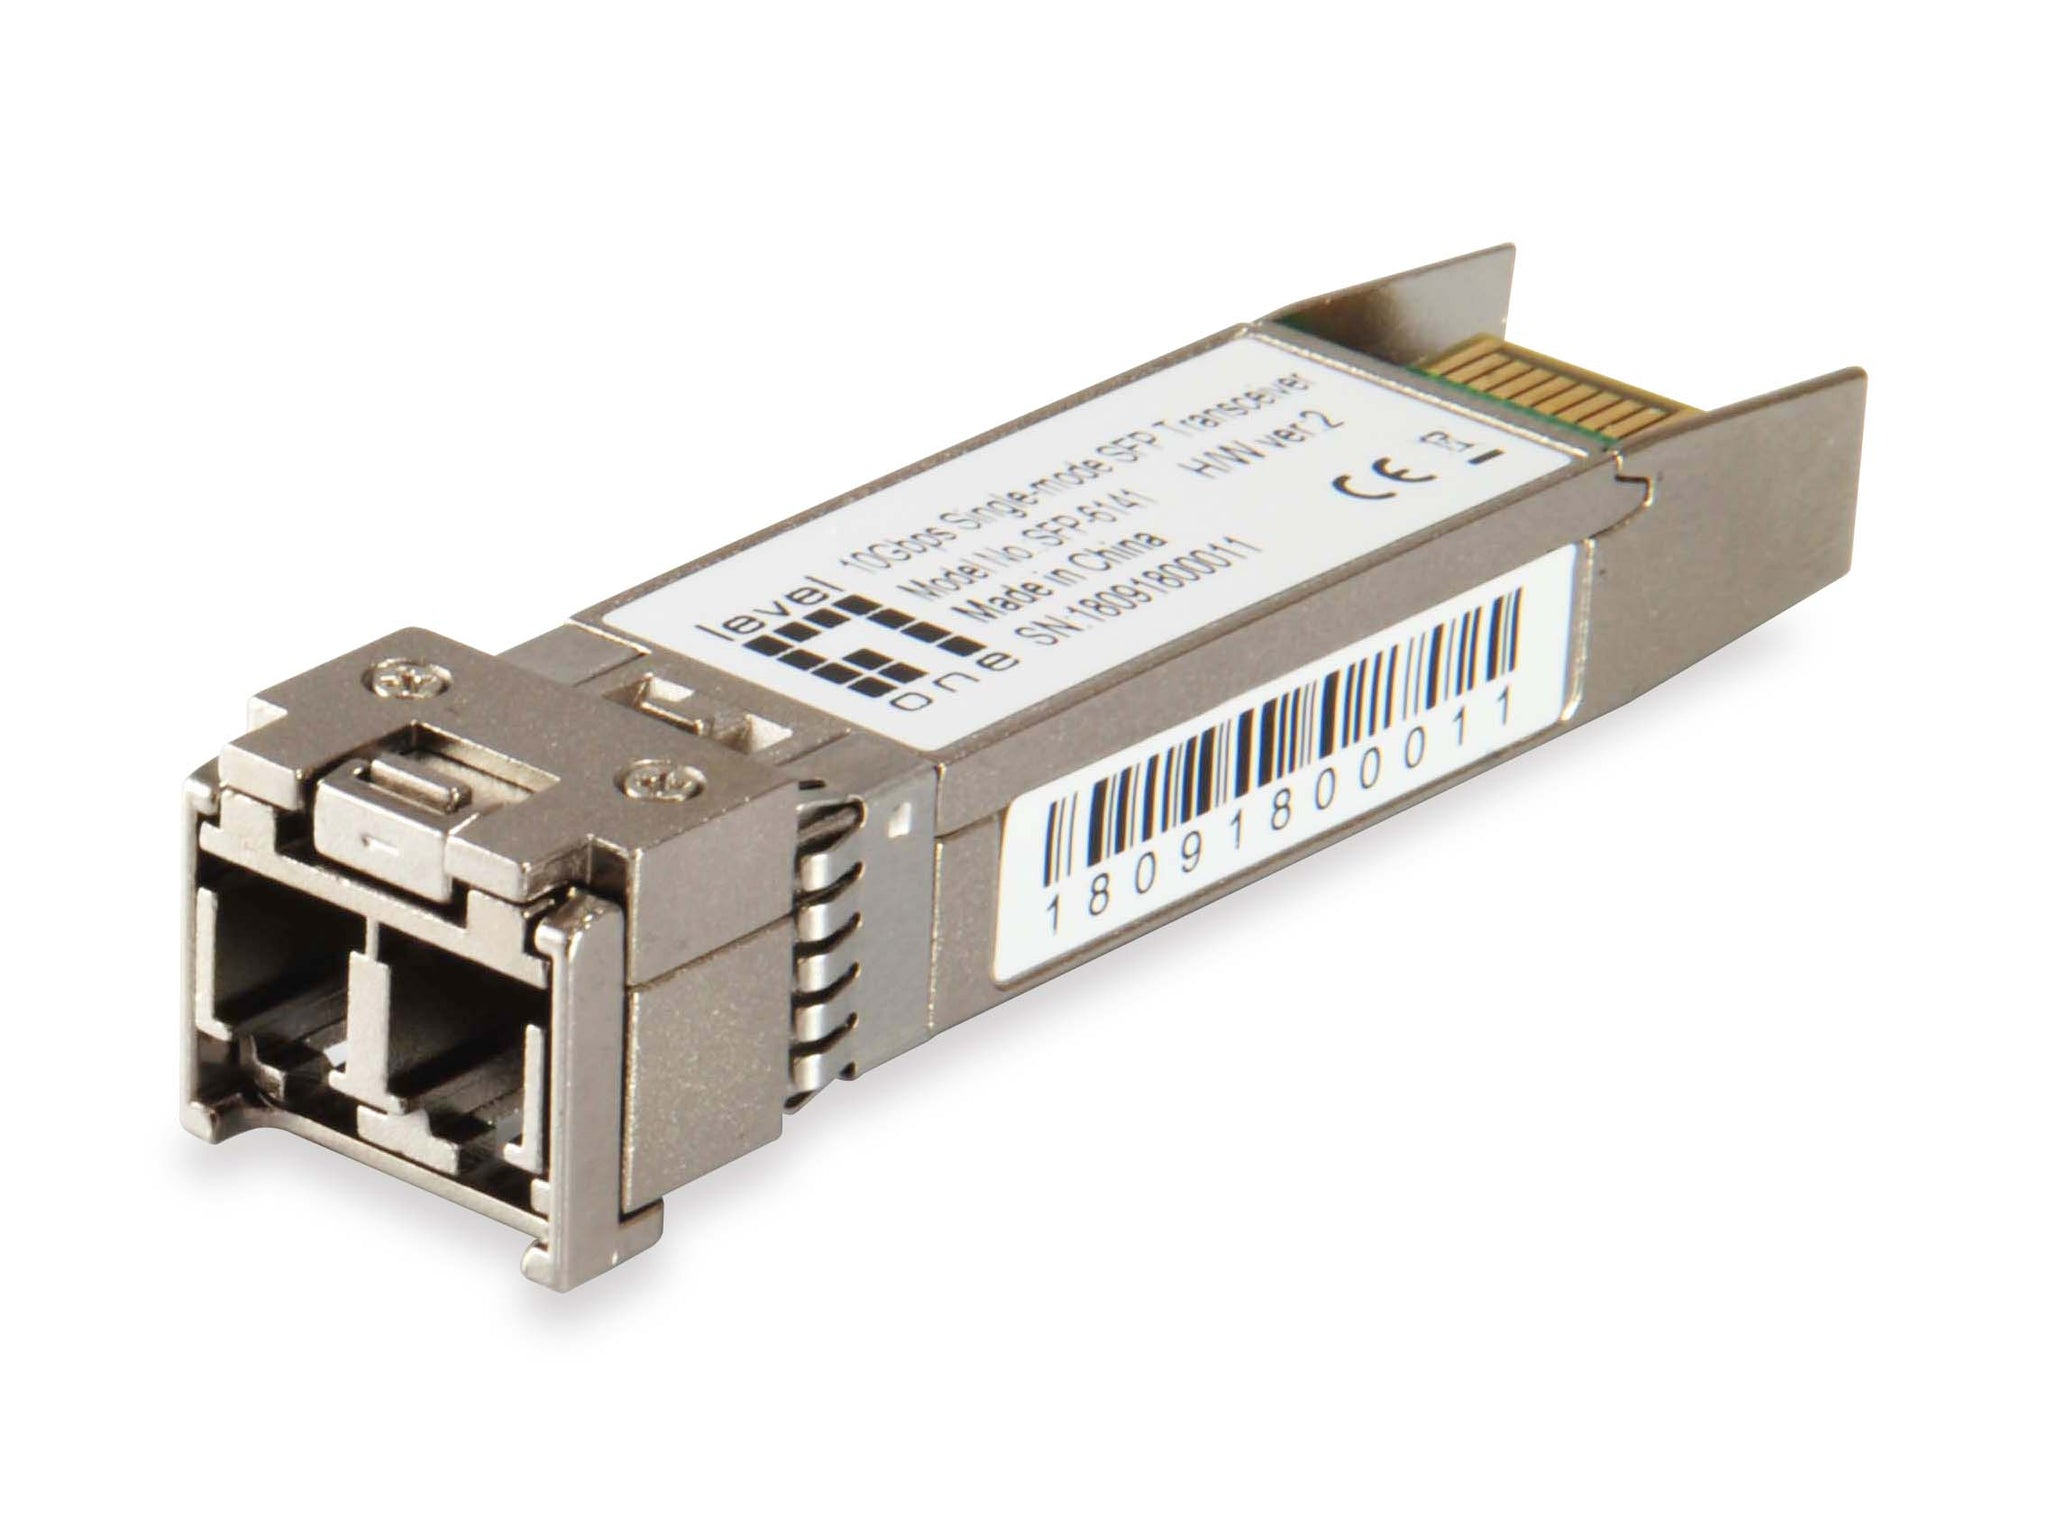 SFP-6141 10Gbps Single-mode SFP Transceiver, 40km, 1550nm